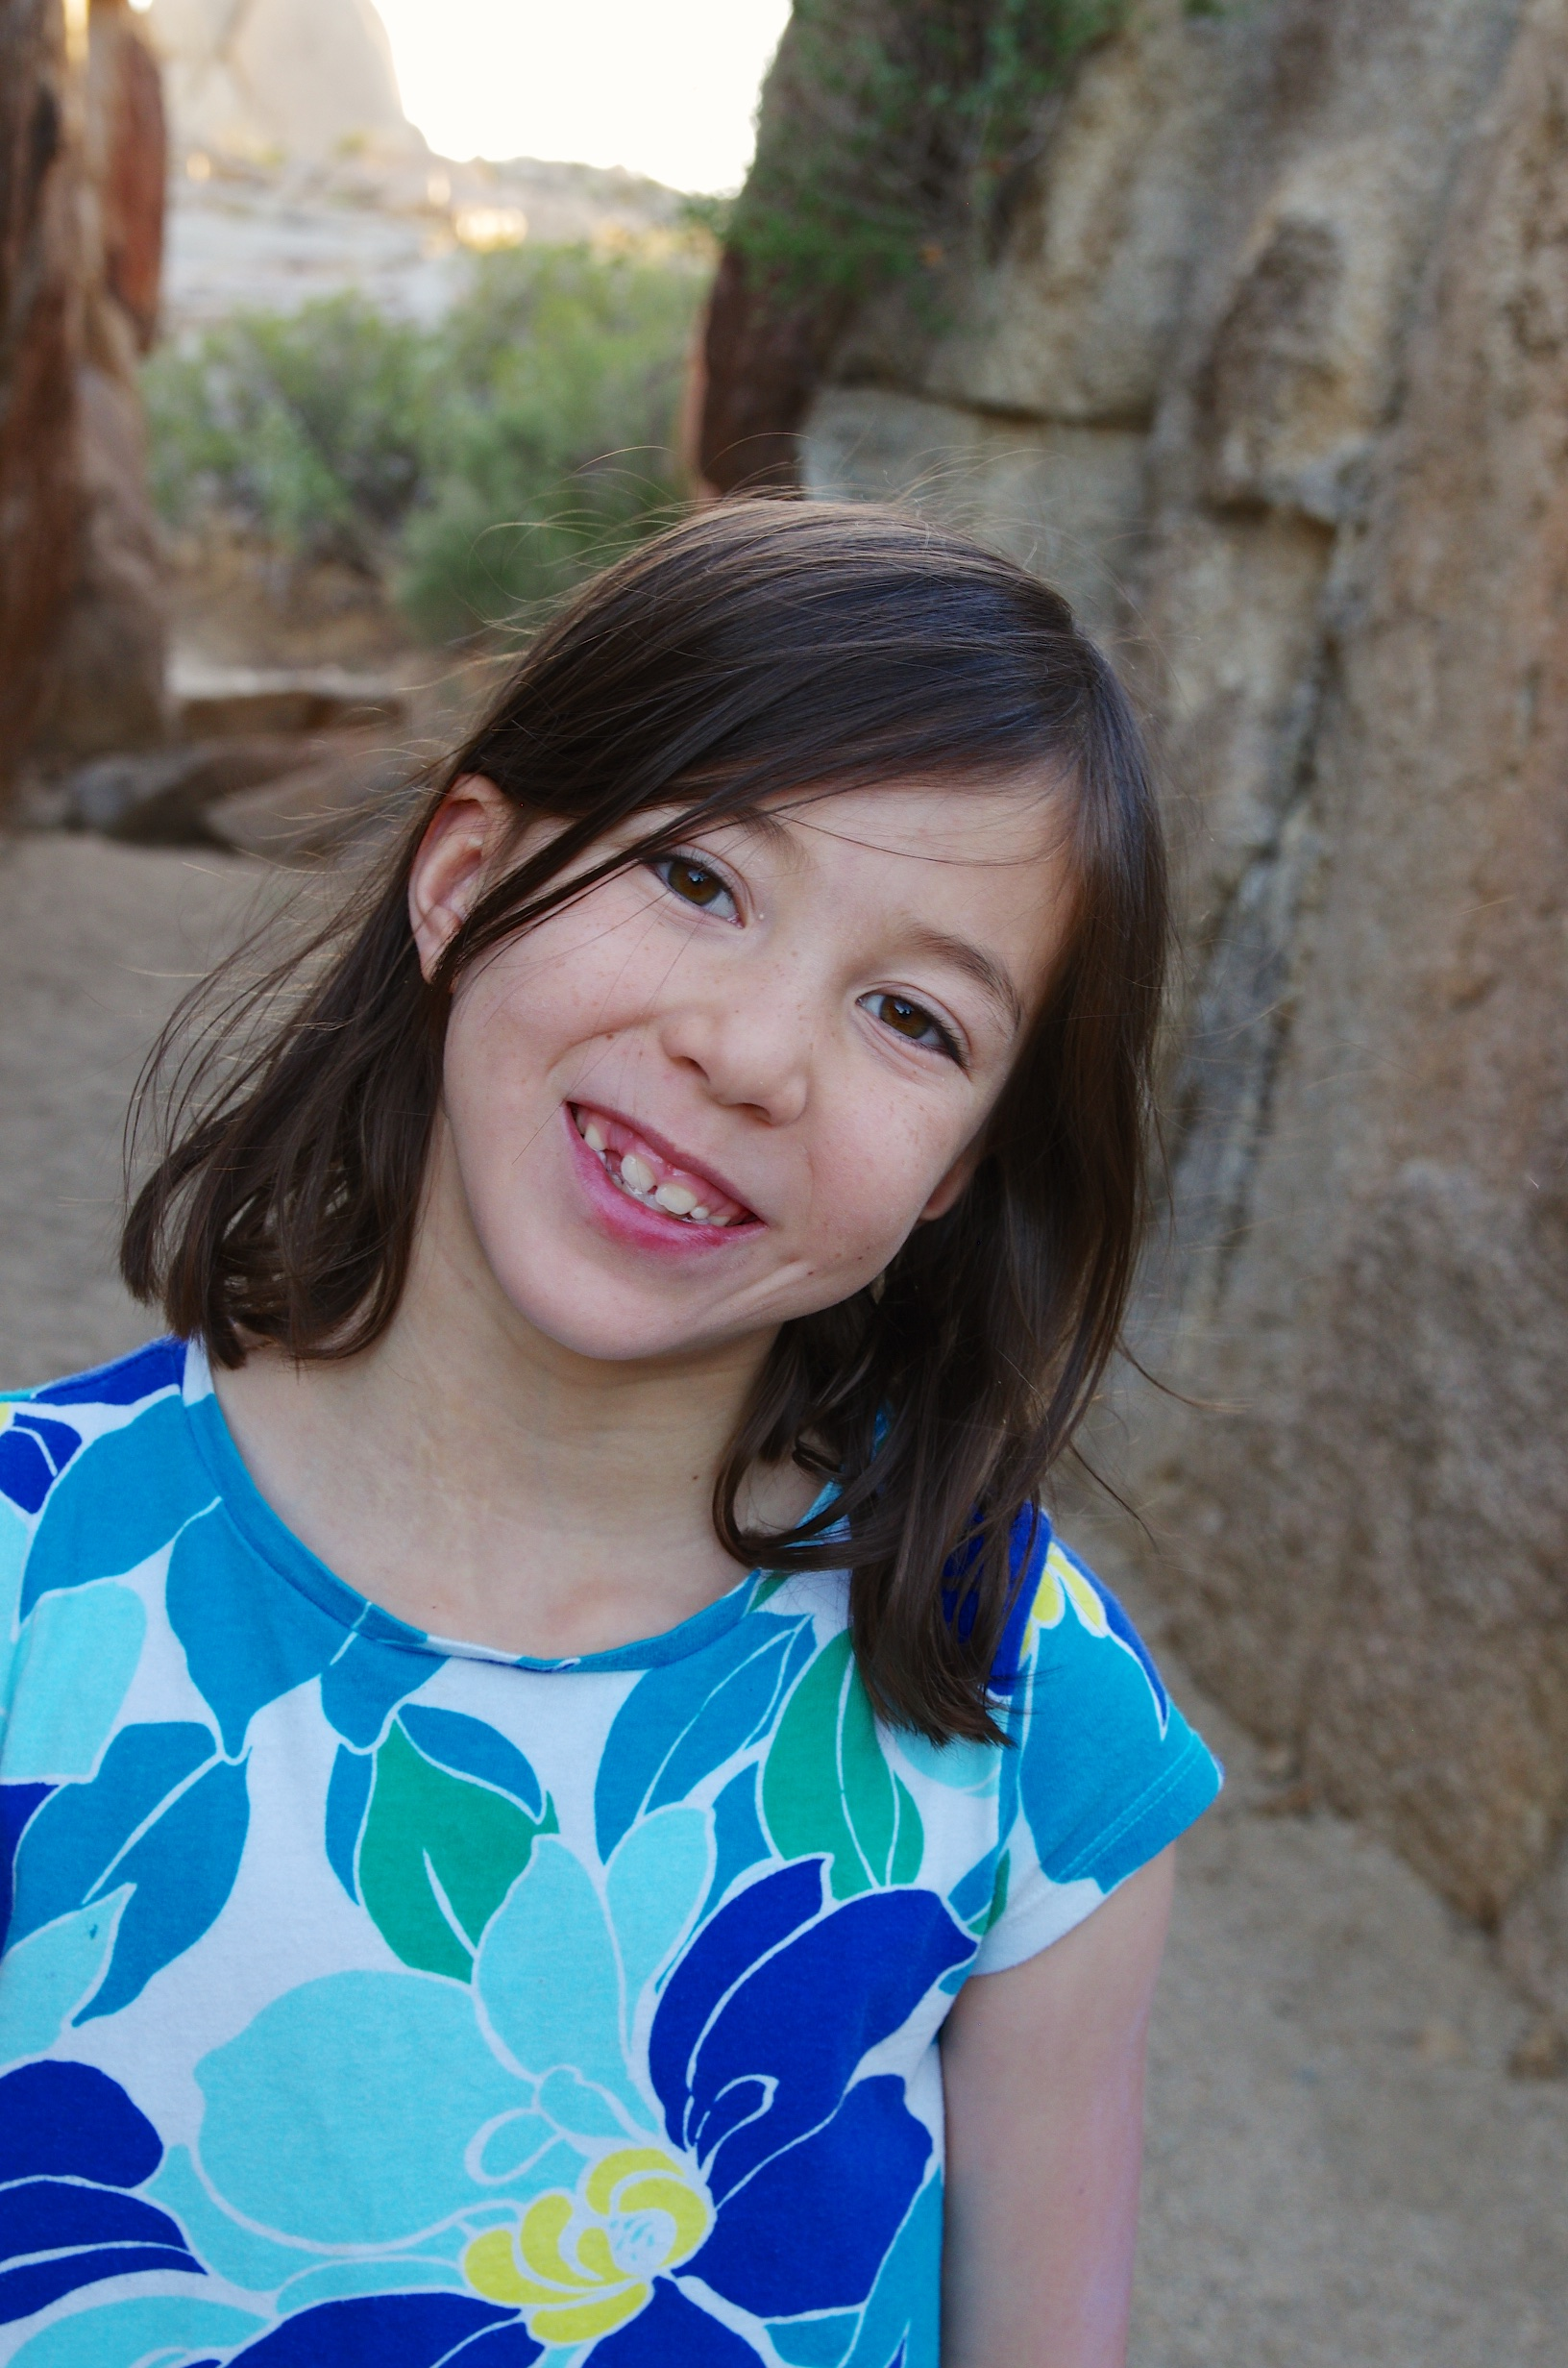 Four reasons to #bethankful – according to a 7 year old. #lifeaftertransplant #thanksgiving #gratitude